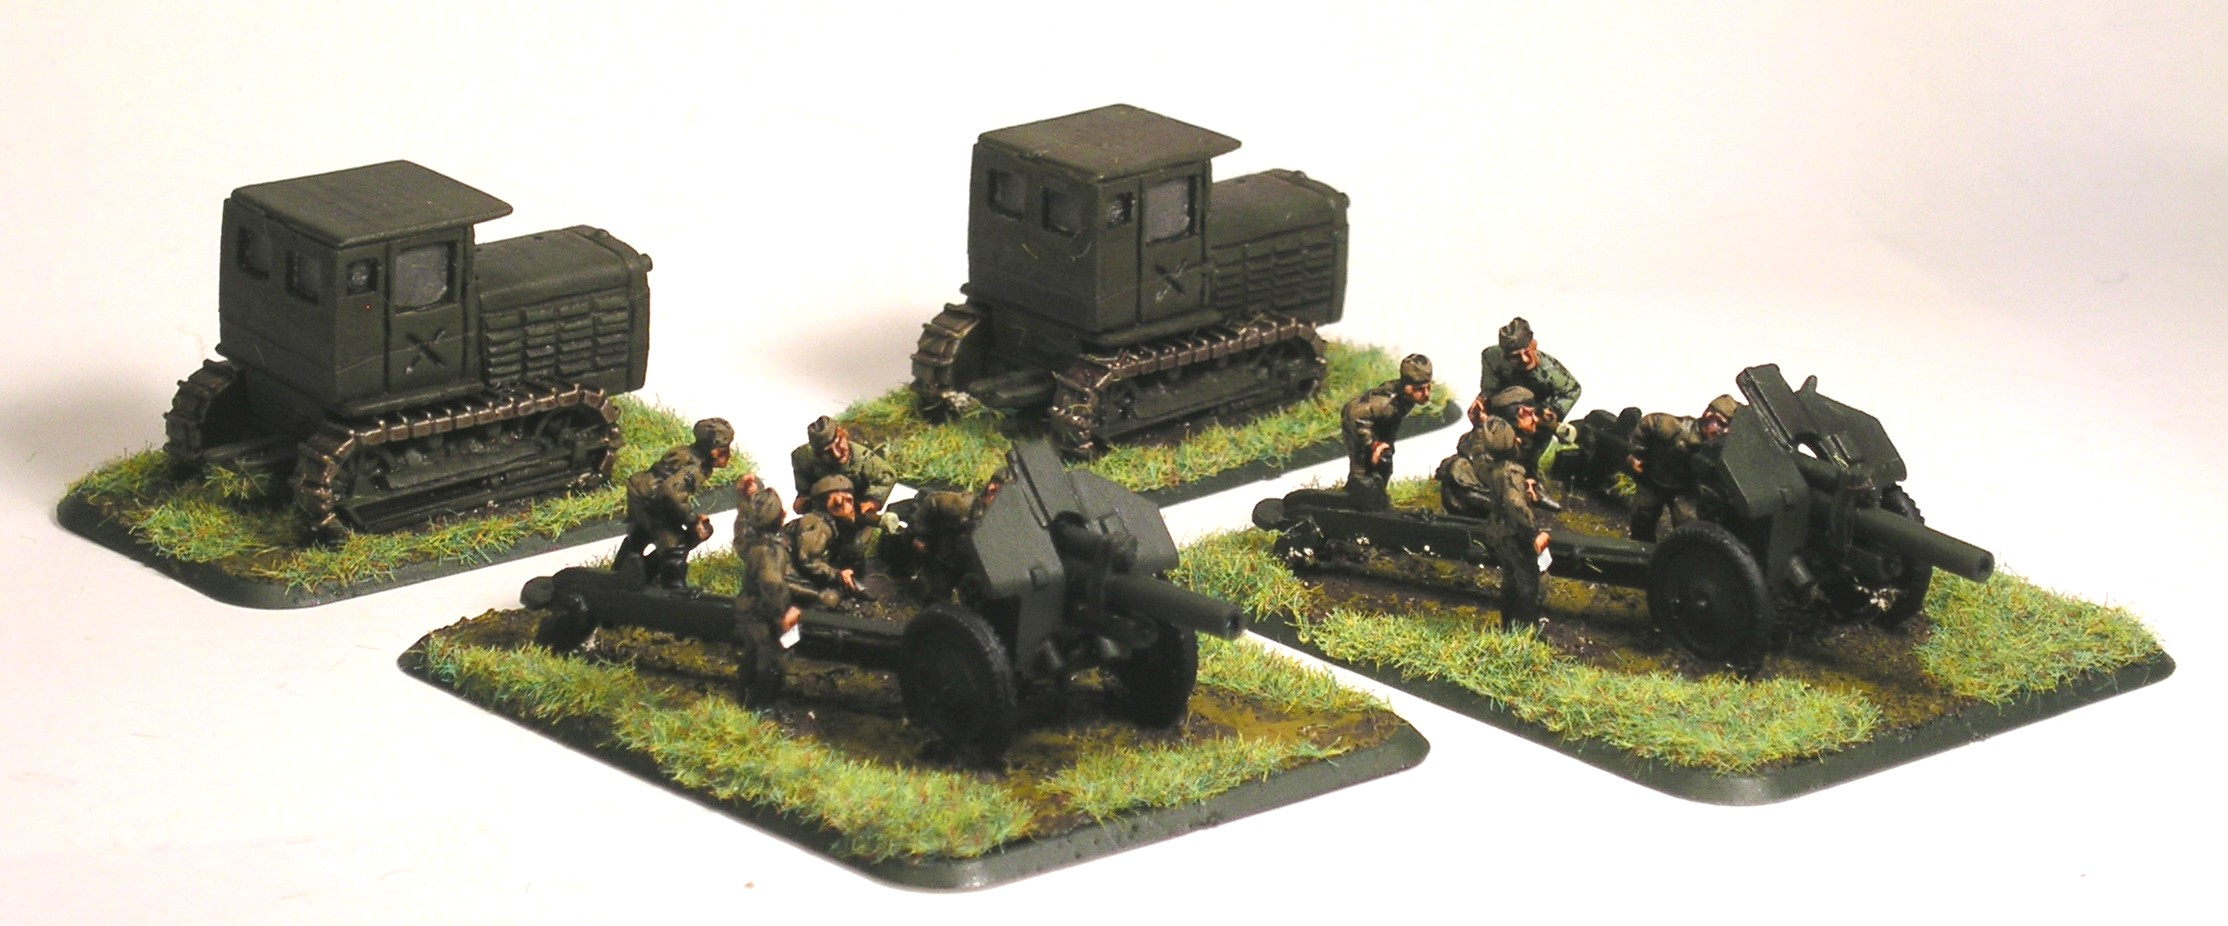 Divisional Artillery Battery (2 x 122mm M38 Guns)